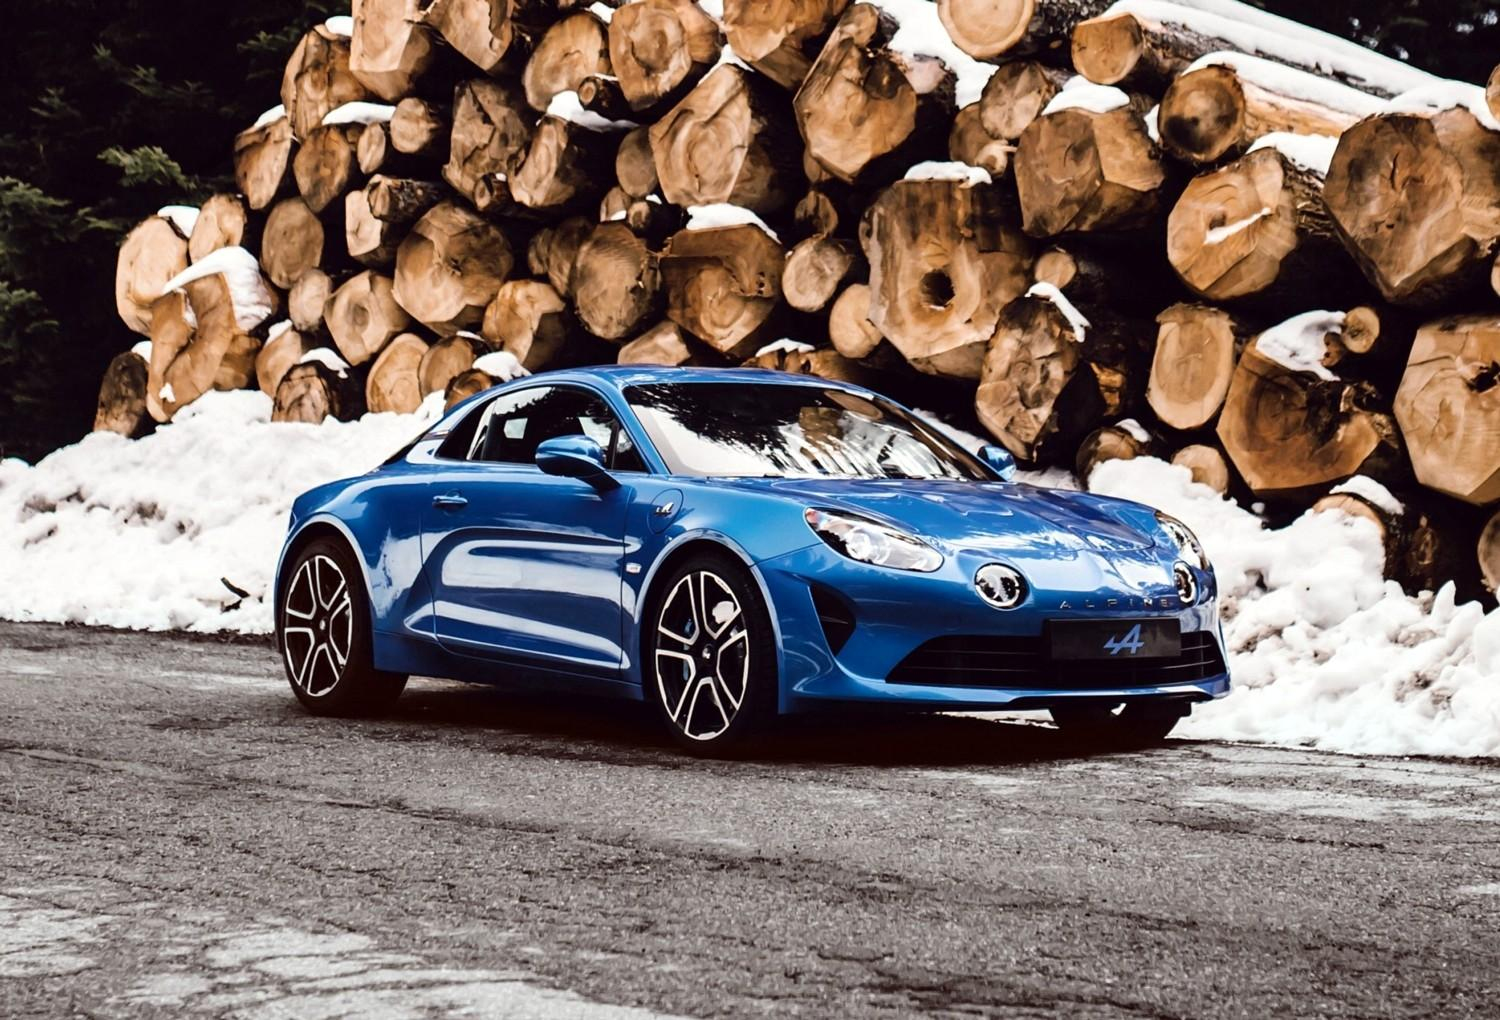 renault alpine a110 piccolo sogno sportivo tgcom24. Black Bedroom Furniture Sets. Home Design Ideas